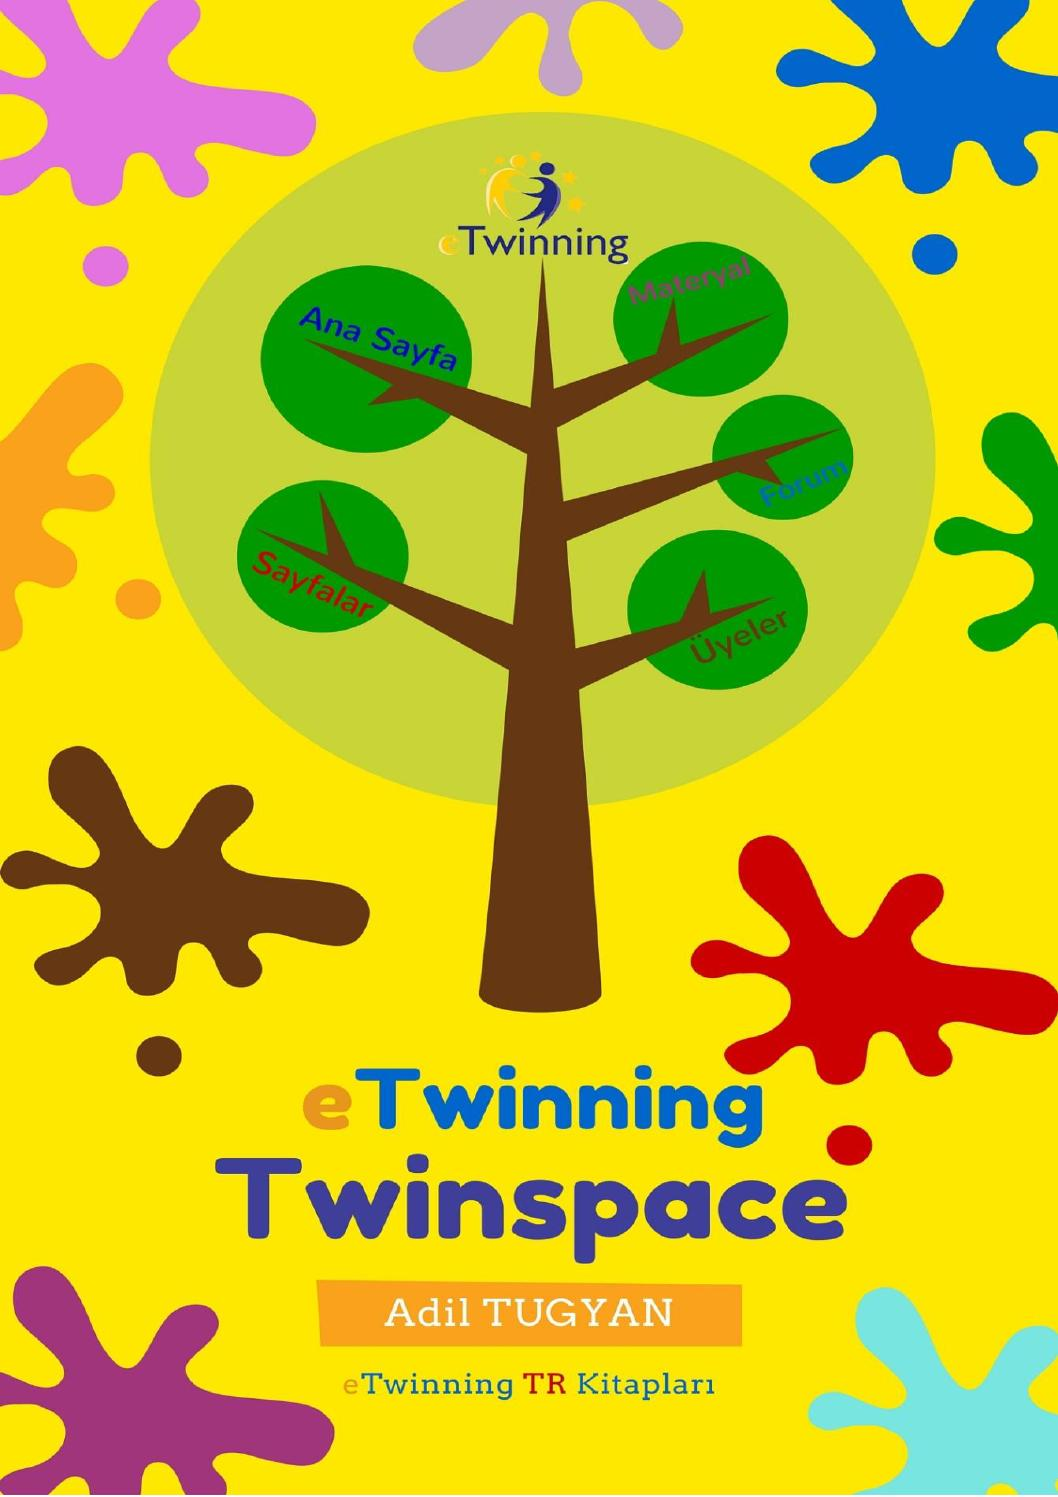 Etwinning Twinspace By Adil Tugyan Issuu